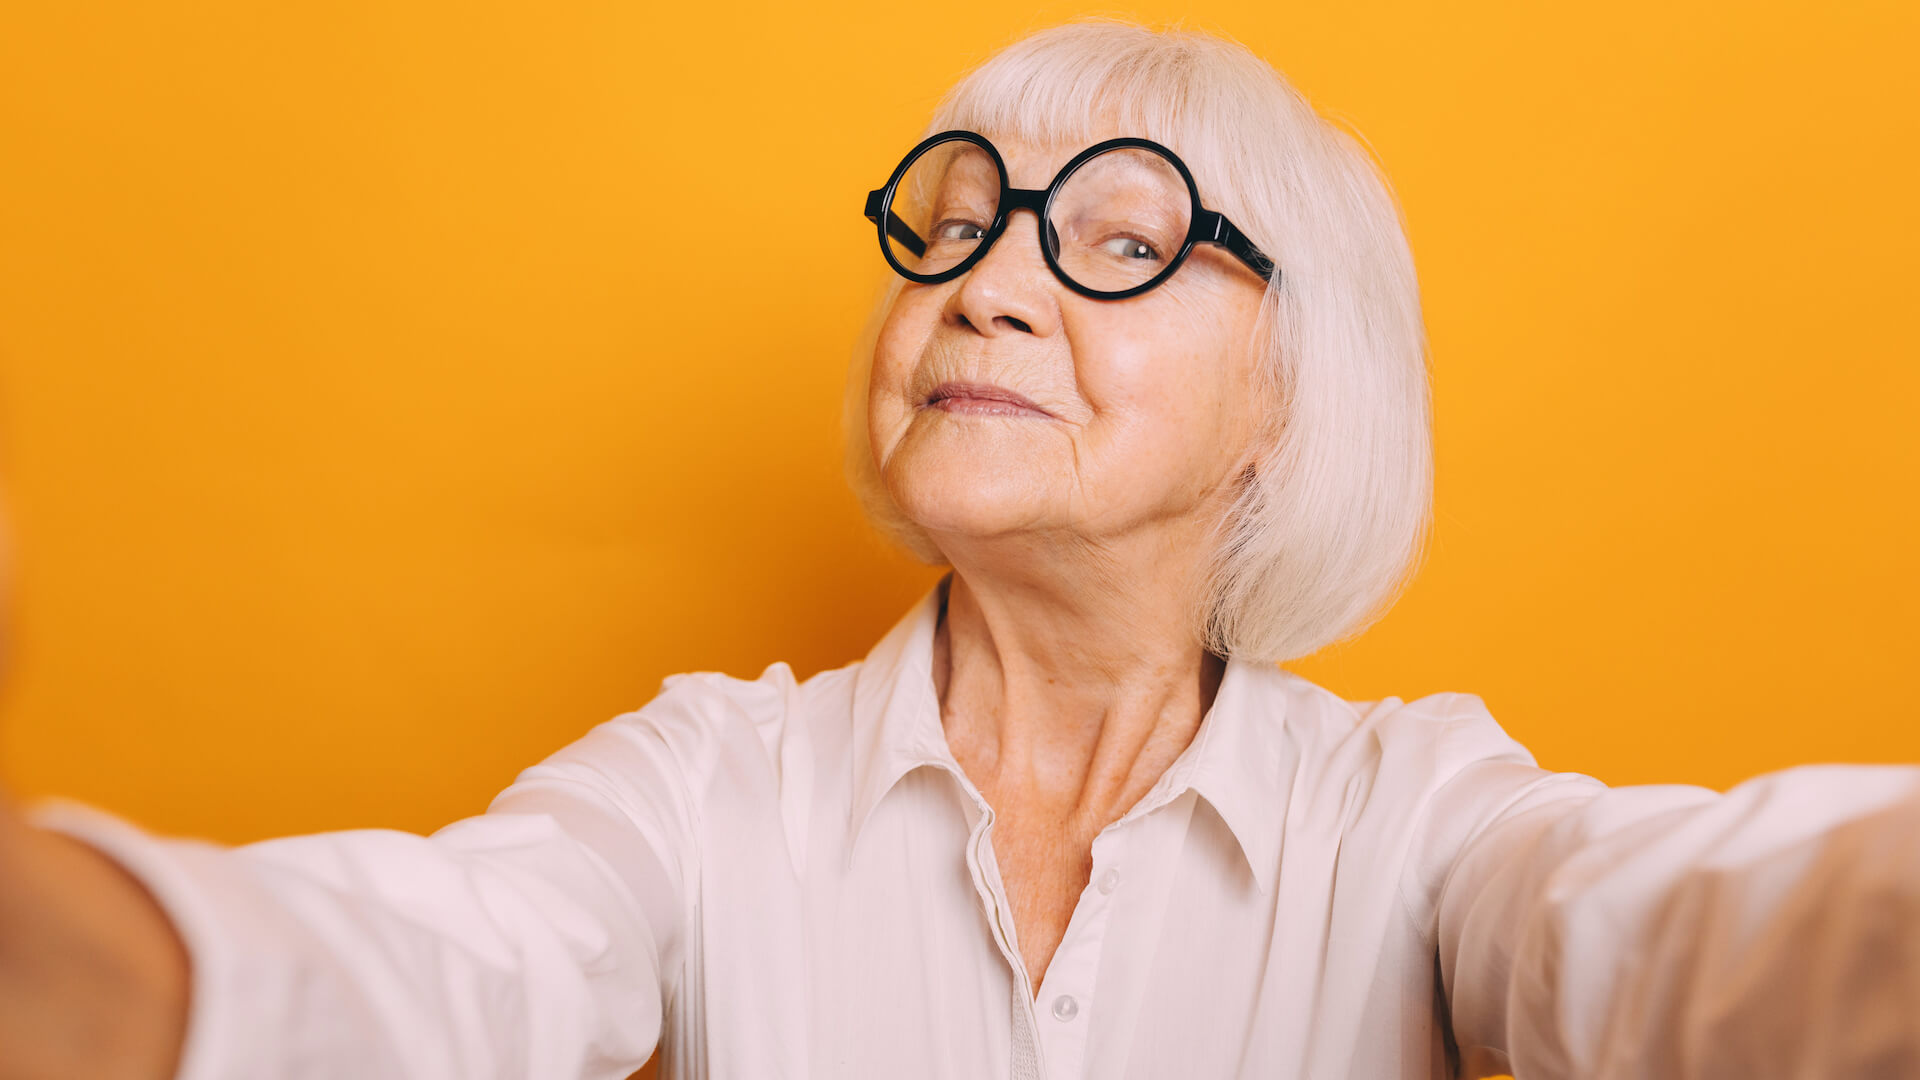 Portrait of elderly woman with short white hair wearing white glasses and light blouse holding camera and taking selfie. Old Woman isolated over orange background